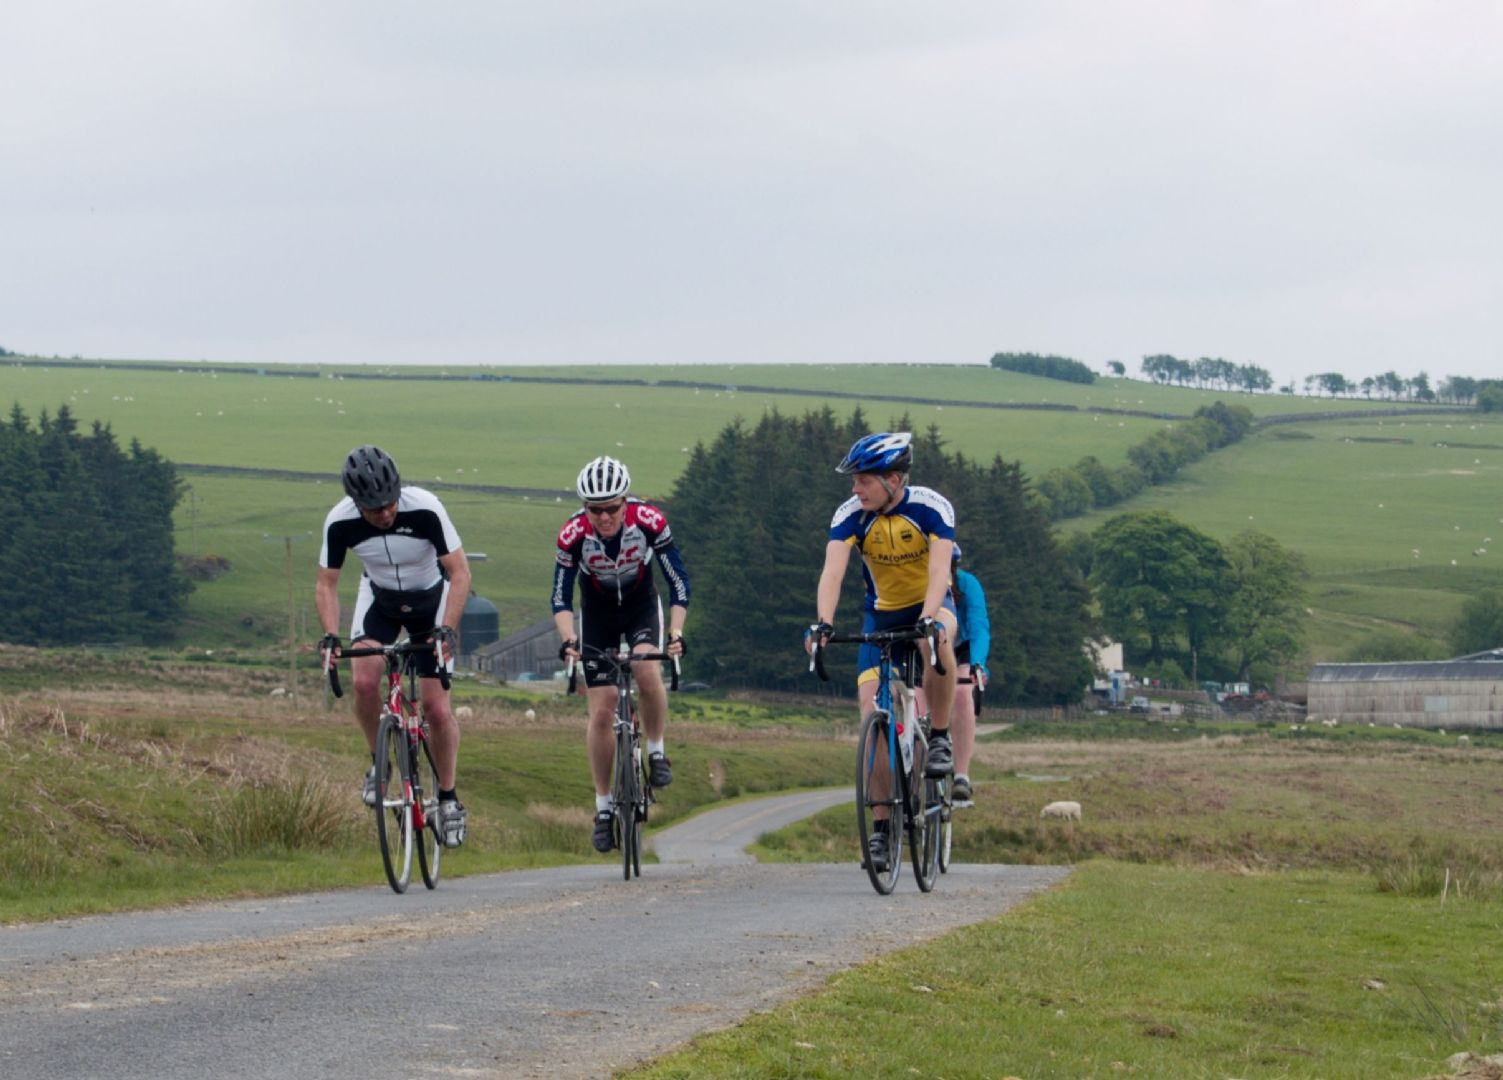 Road Cycling Weekend 33.jpg - UK - North Wales - Guided Road Cycling Weekend - Road Cycling